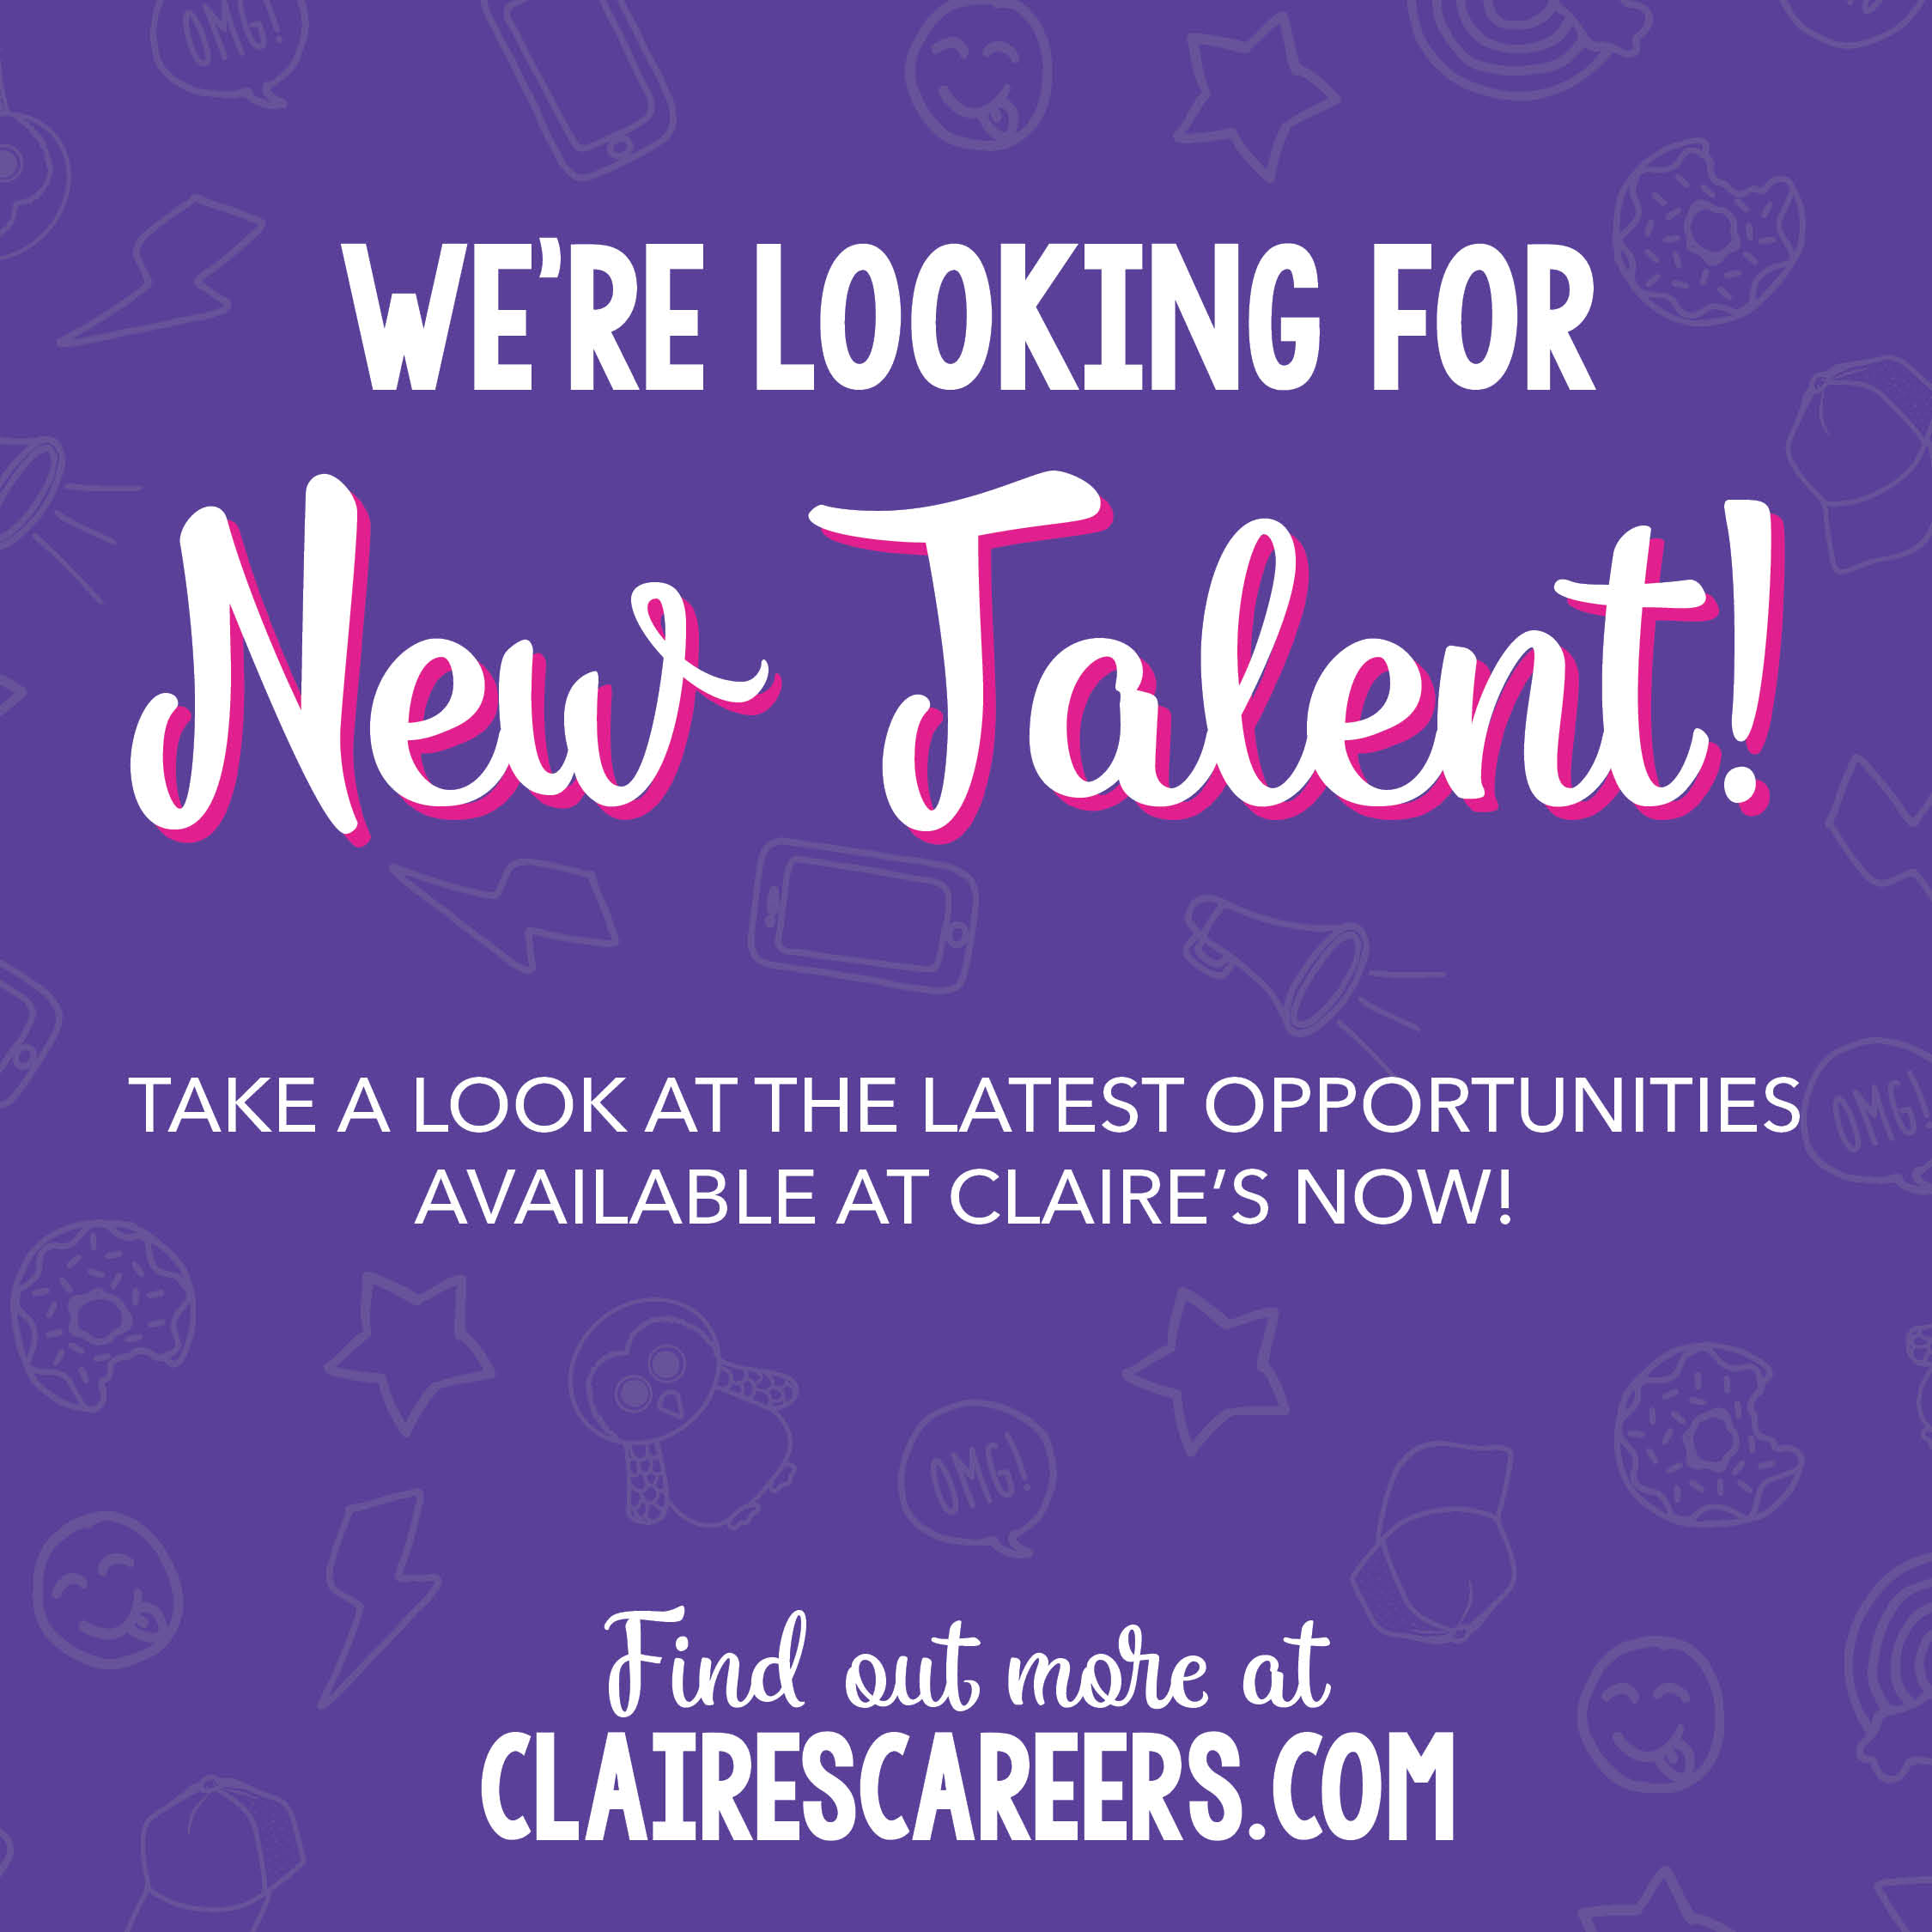 Claire's Hiring